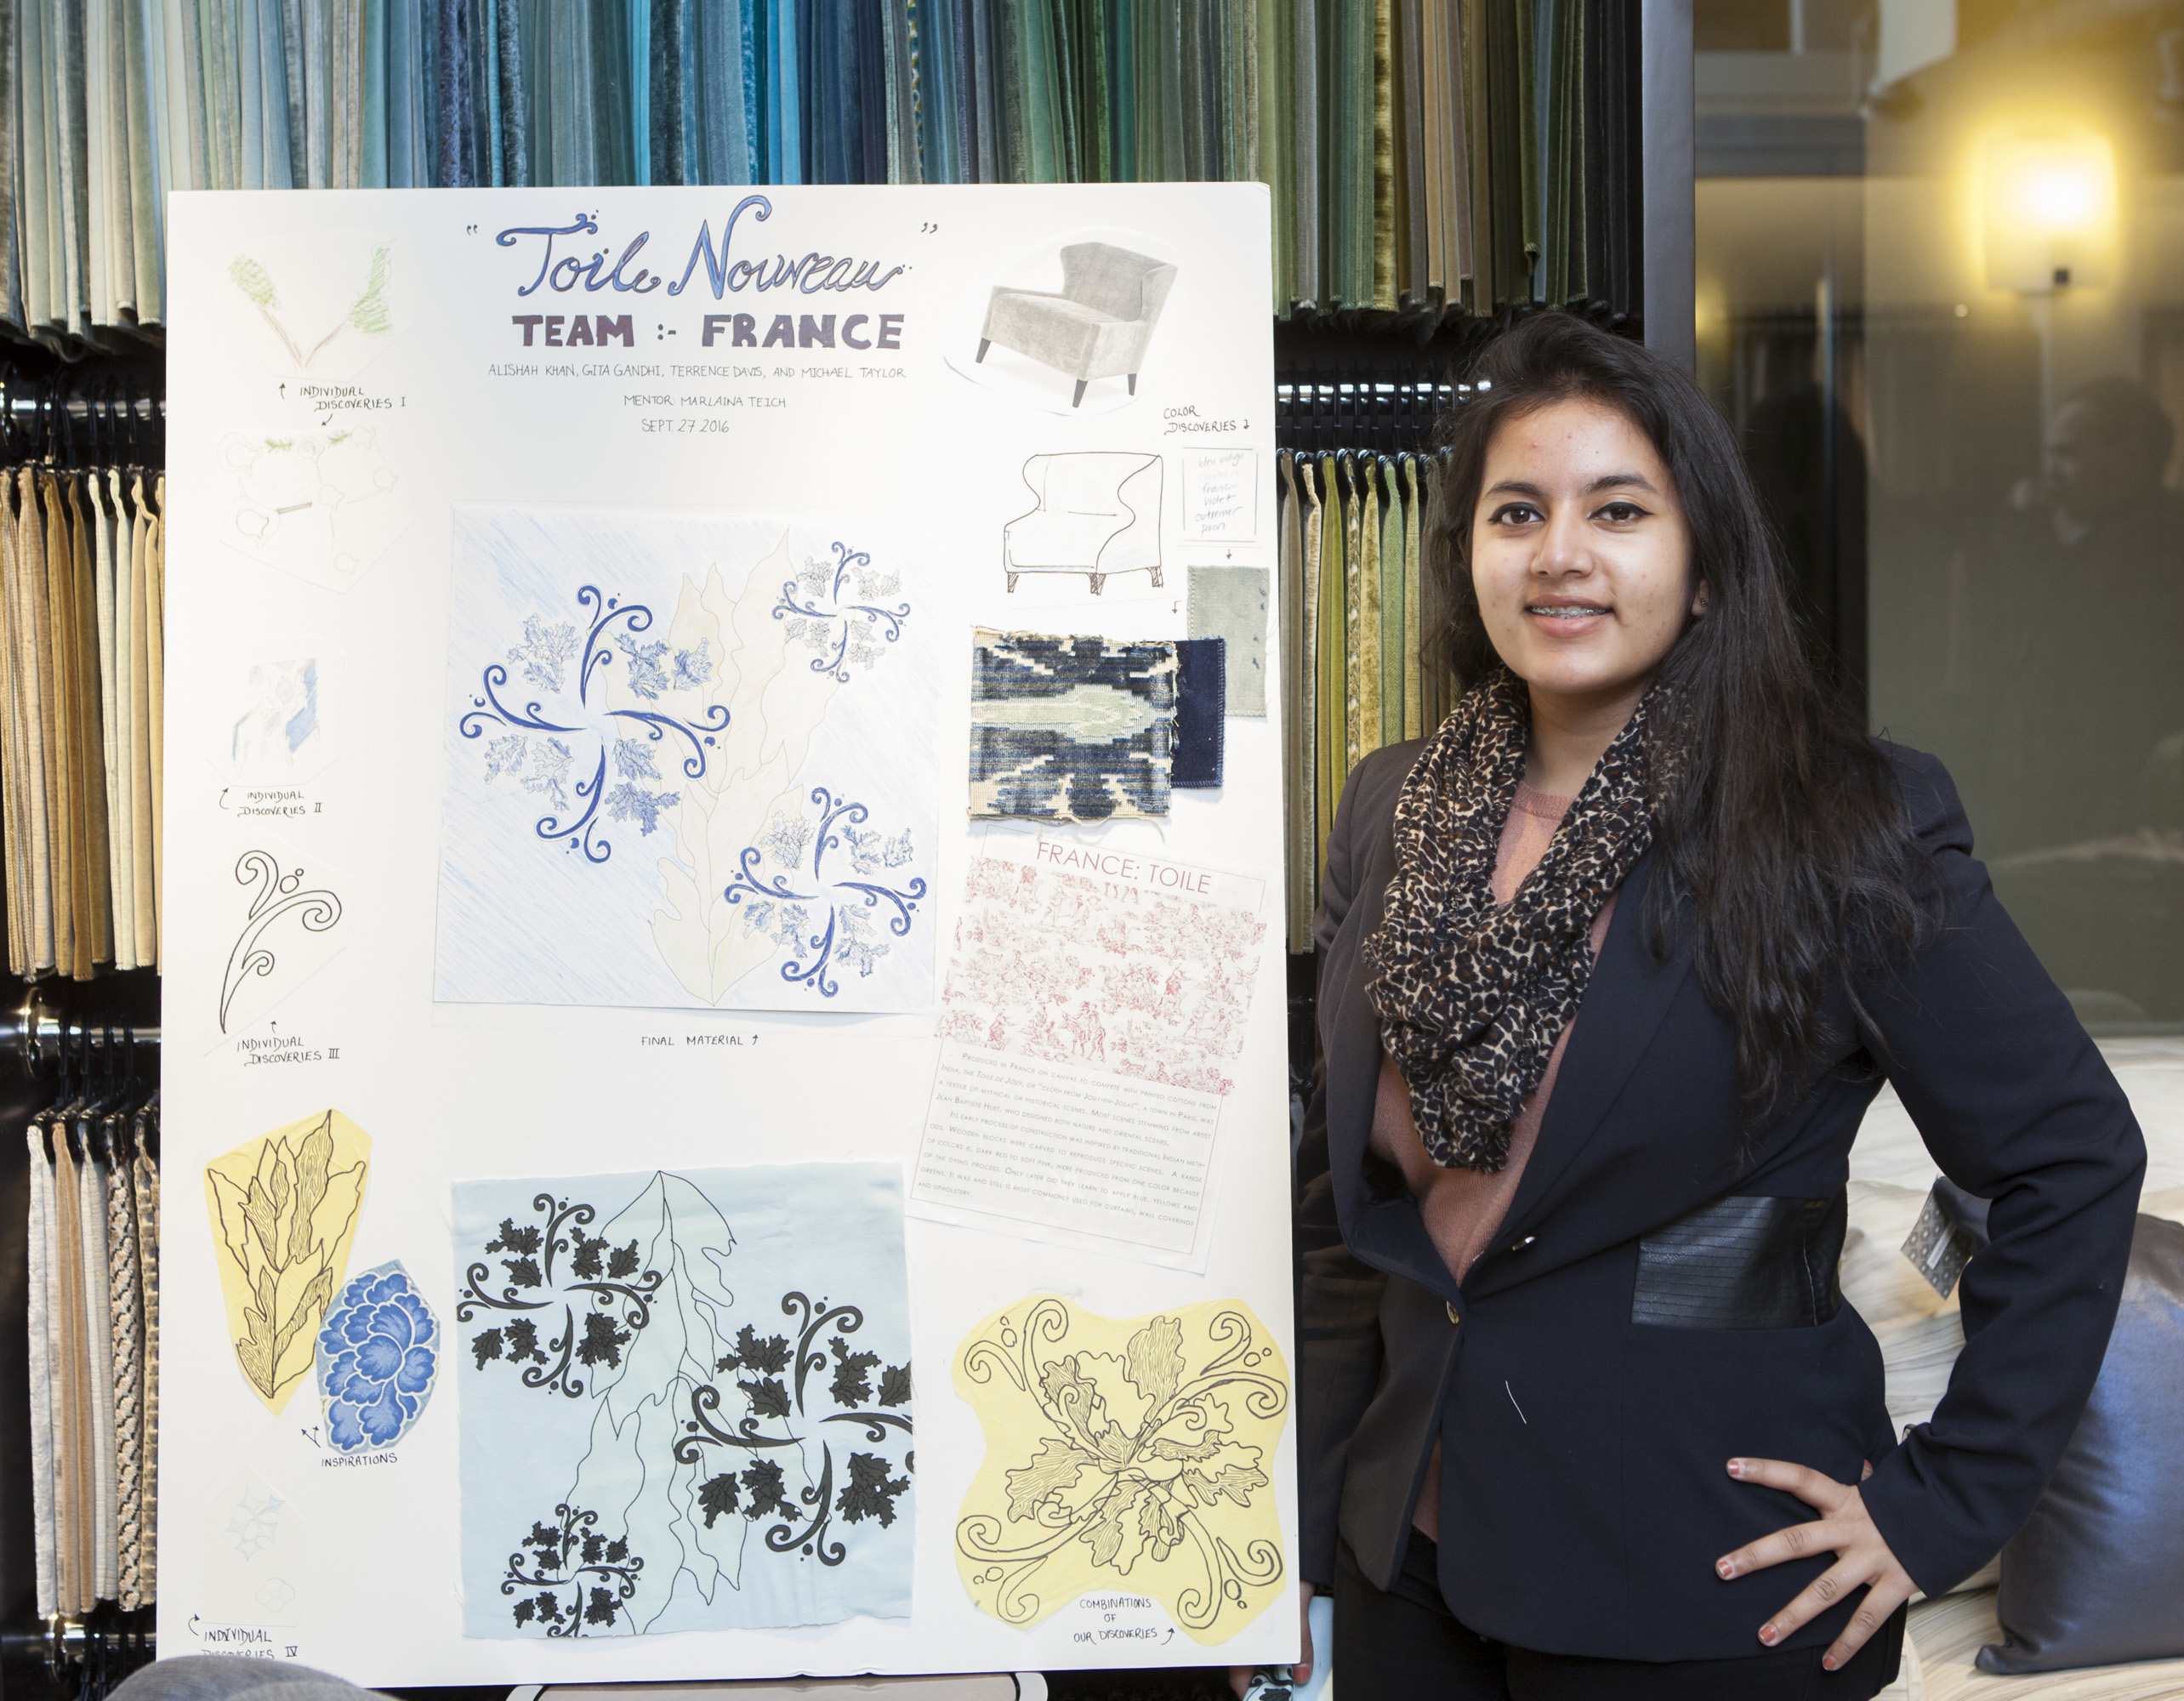 NYIT student Alishah Khan with the Team France design board